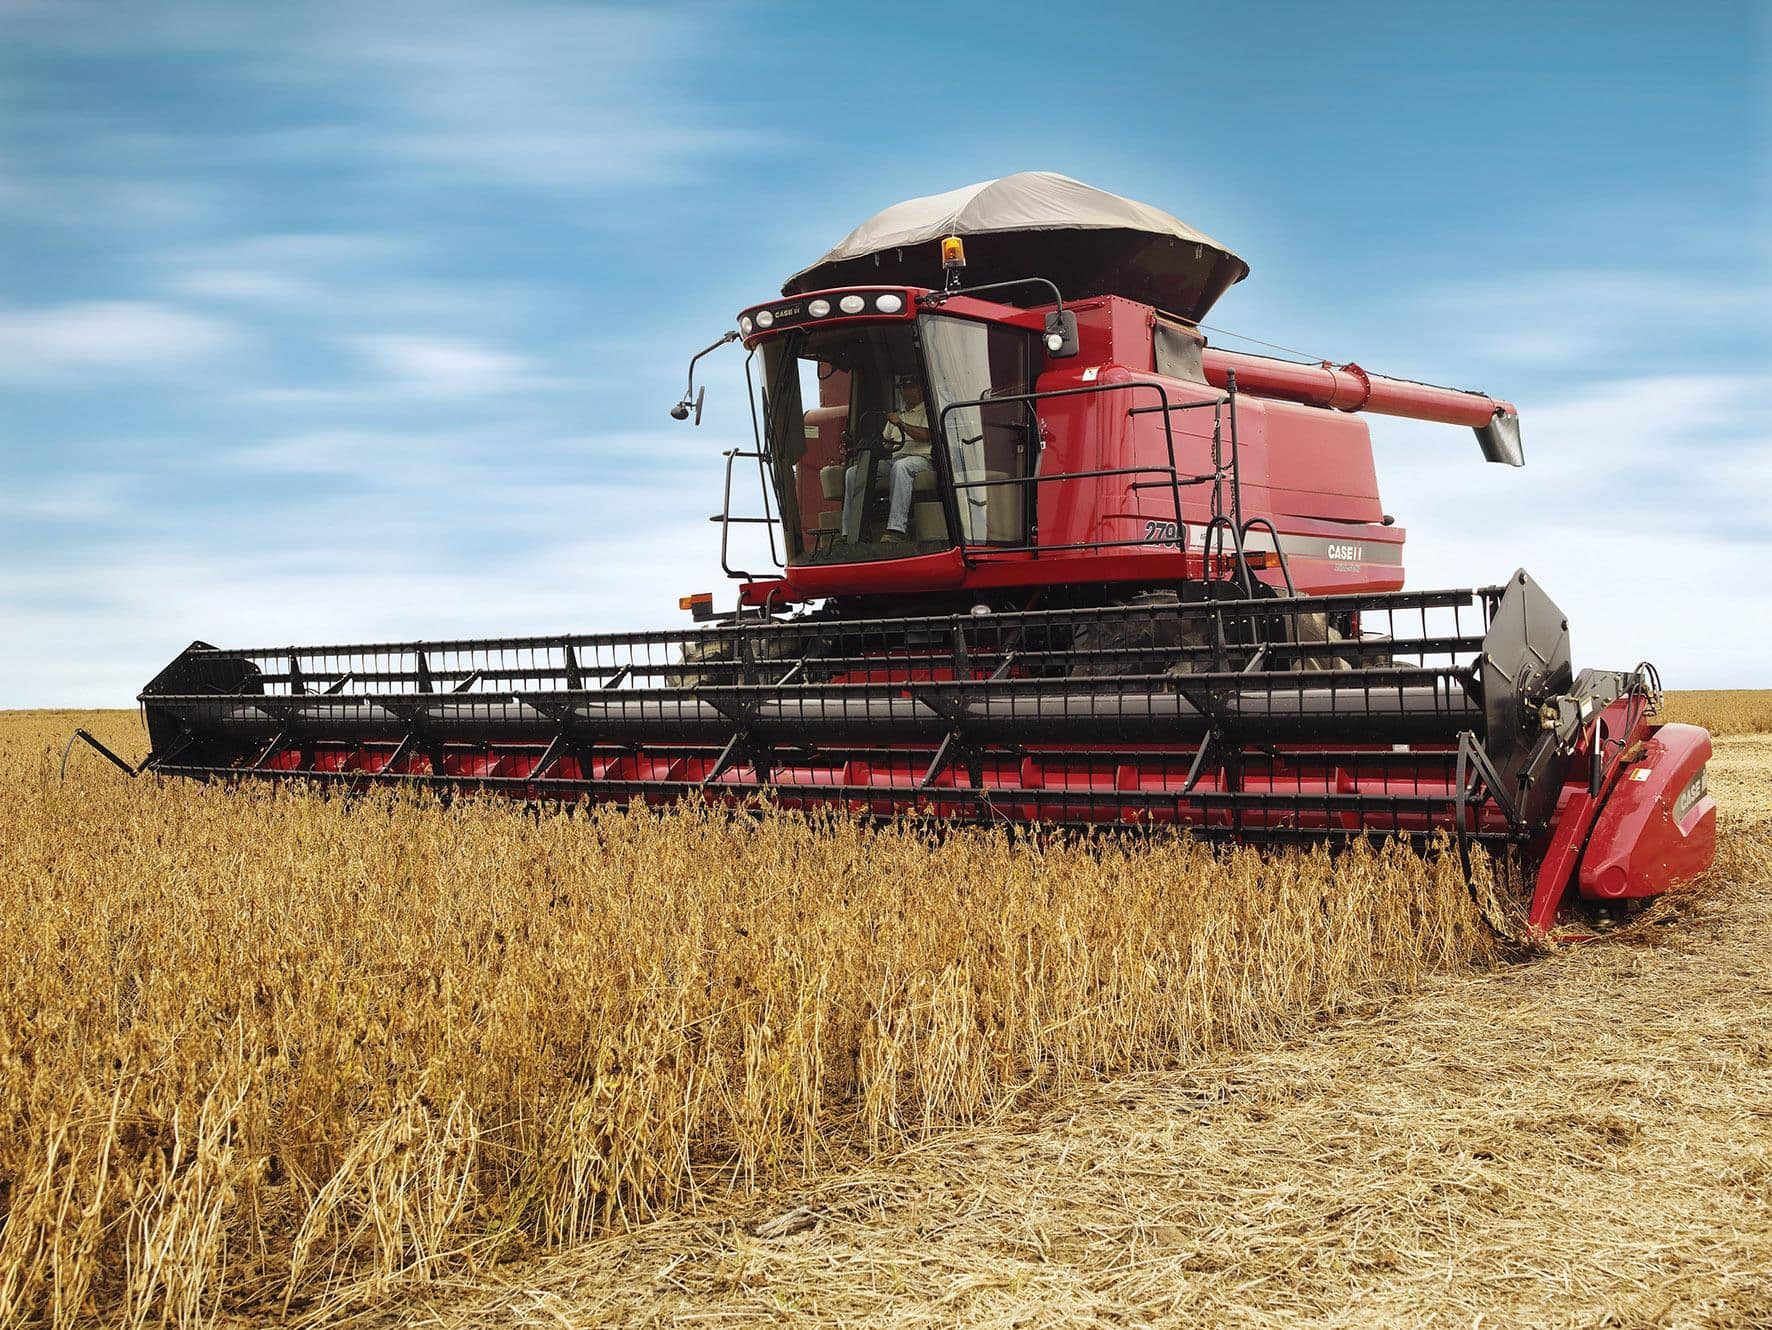 Axial-Flow 2799